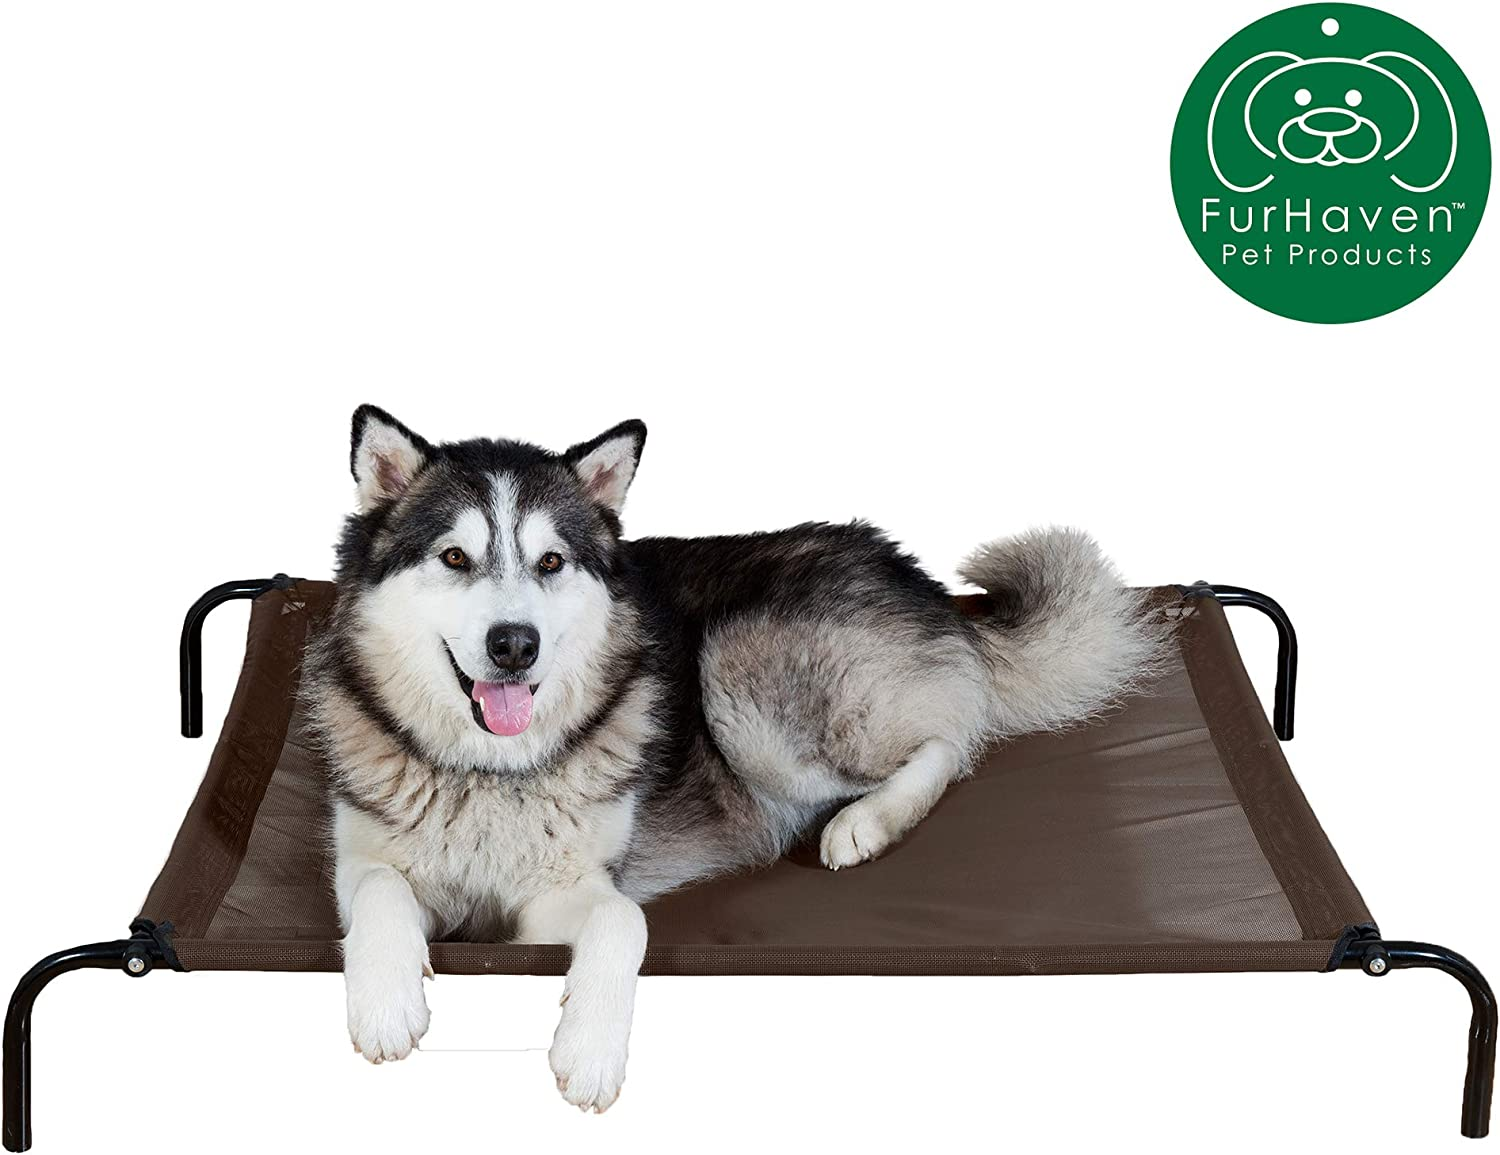 Furhaven Pet Dog Bed | Mold & Mildew Resistant Breathable Cooling Mesh Elevated Pet Cot Bed & Self-Warming Pet Mat Insert for Dogs & Cats - Available in Multiple Colors & Sizes